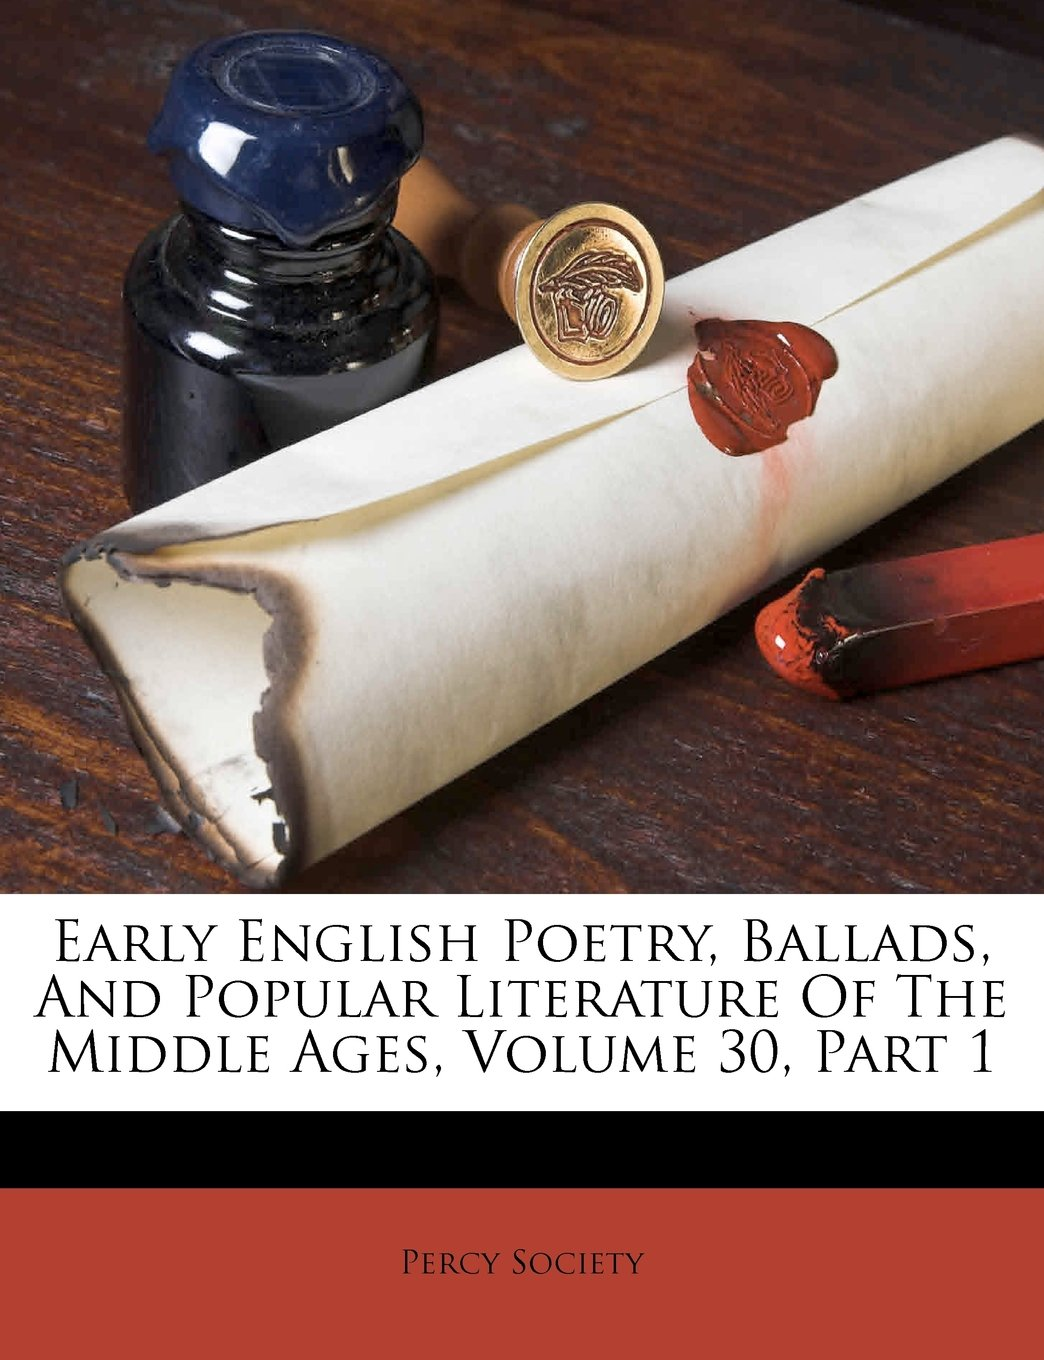 Read Online Early English Poetry, Ballads, And Popular Literature Of The Middle Ages, Volume 30, Part 1 ebook